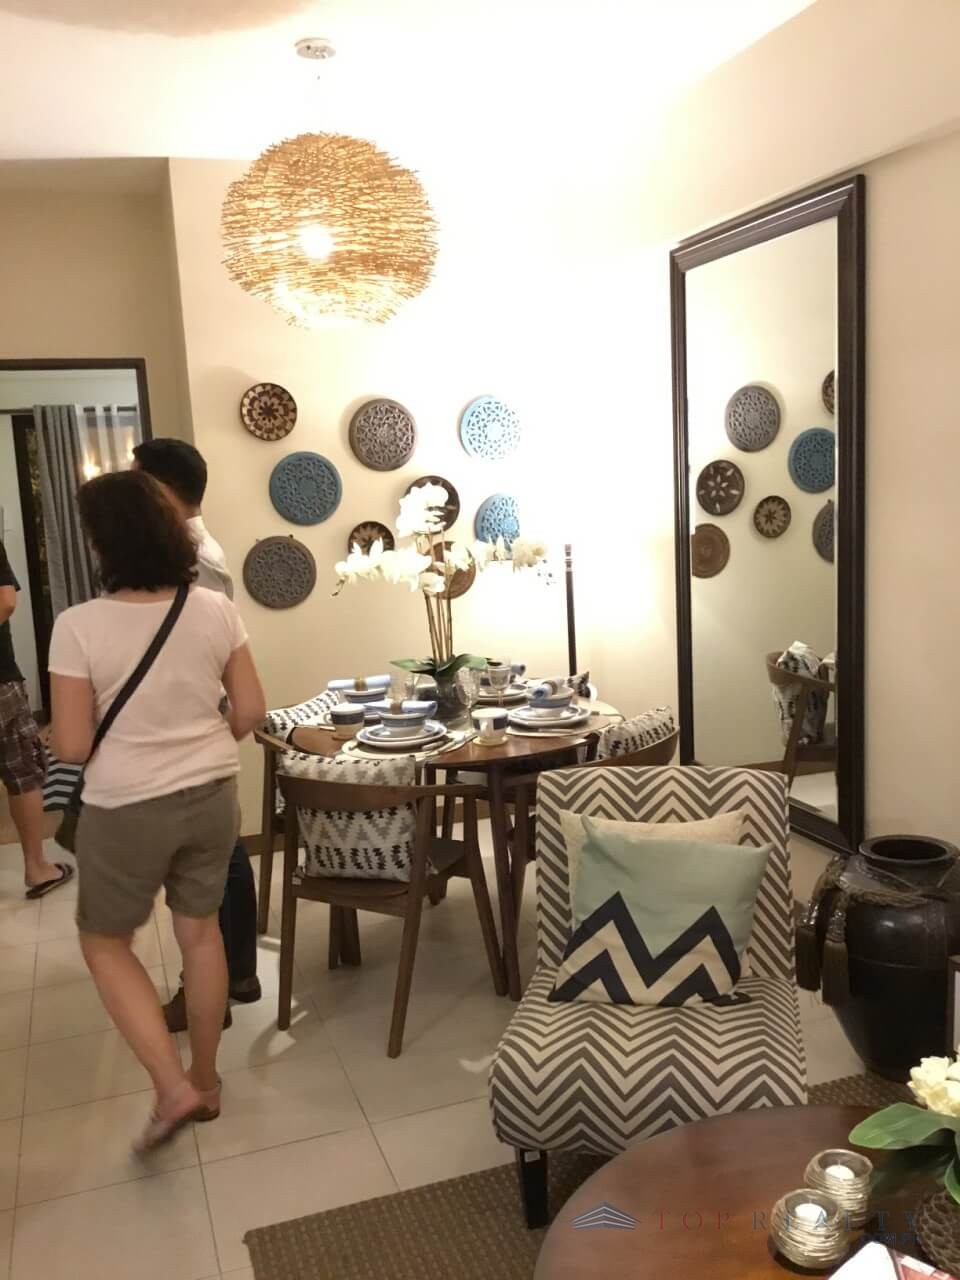 Top Realty Corporation Ds881176 Two Bedroom 2br Condo Unit With Balcony For Sale In Mirea Residences In Amang Rodriguez Ave Brgy Santolan Pasig City